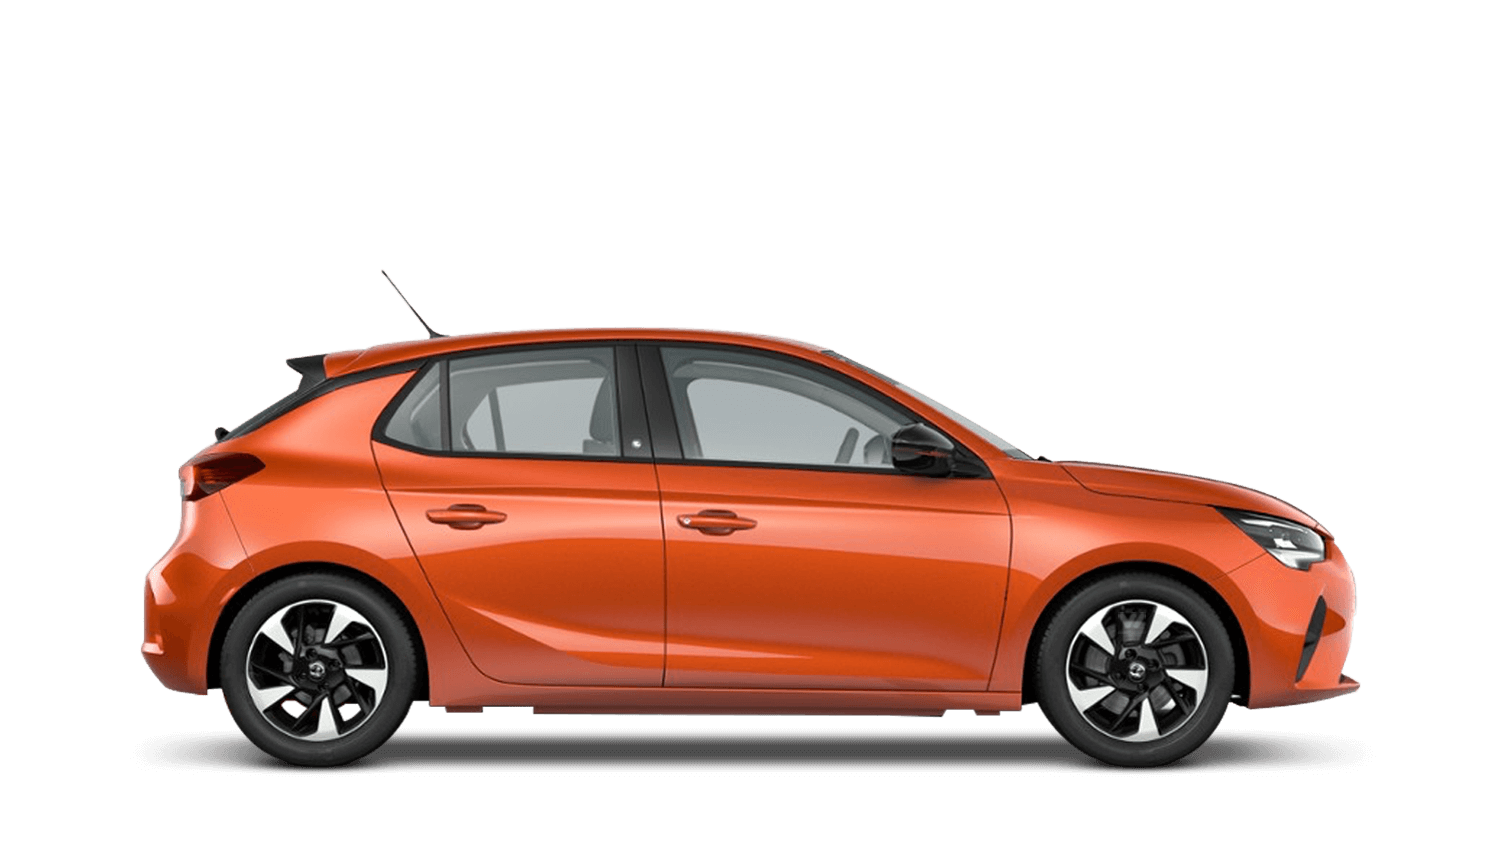 New All-Electric Corsa-e Local Business Offers